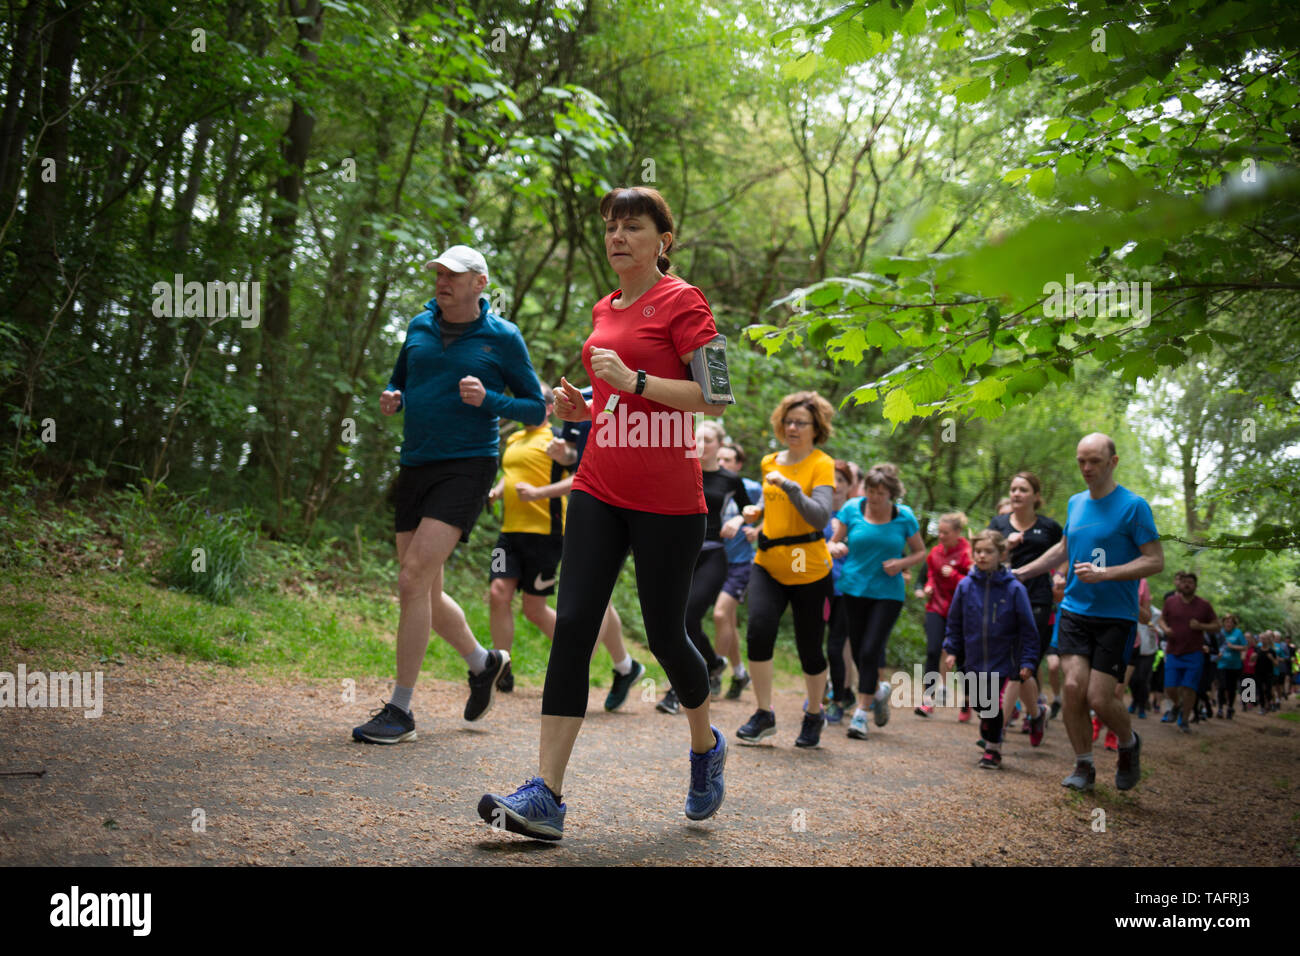 Glasgow, UK. 25th May, 2019. The 534th free and timed Parkrun event takes place in Pollok Country Park, with local running club Bellahouston Harriers doing a volunteer-takeover, with their club runners fulfilling all the volunteer positions on the run course, in Glasgow, Scotland, on 25 May 2019. This Parkrun was the 534th free and timed Parkrun 5km run held in the park in Glasgow's Southside, and is one of hundreds of such all-inclusive events held across the UK and internationally every weekend under the Parkrun banner. Credit: jeremy sutton-hibbert/Alamy Live News Stock Photo